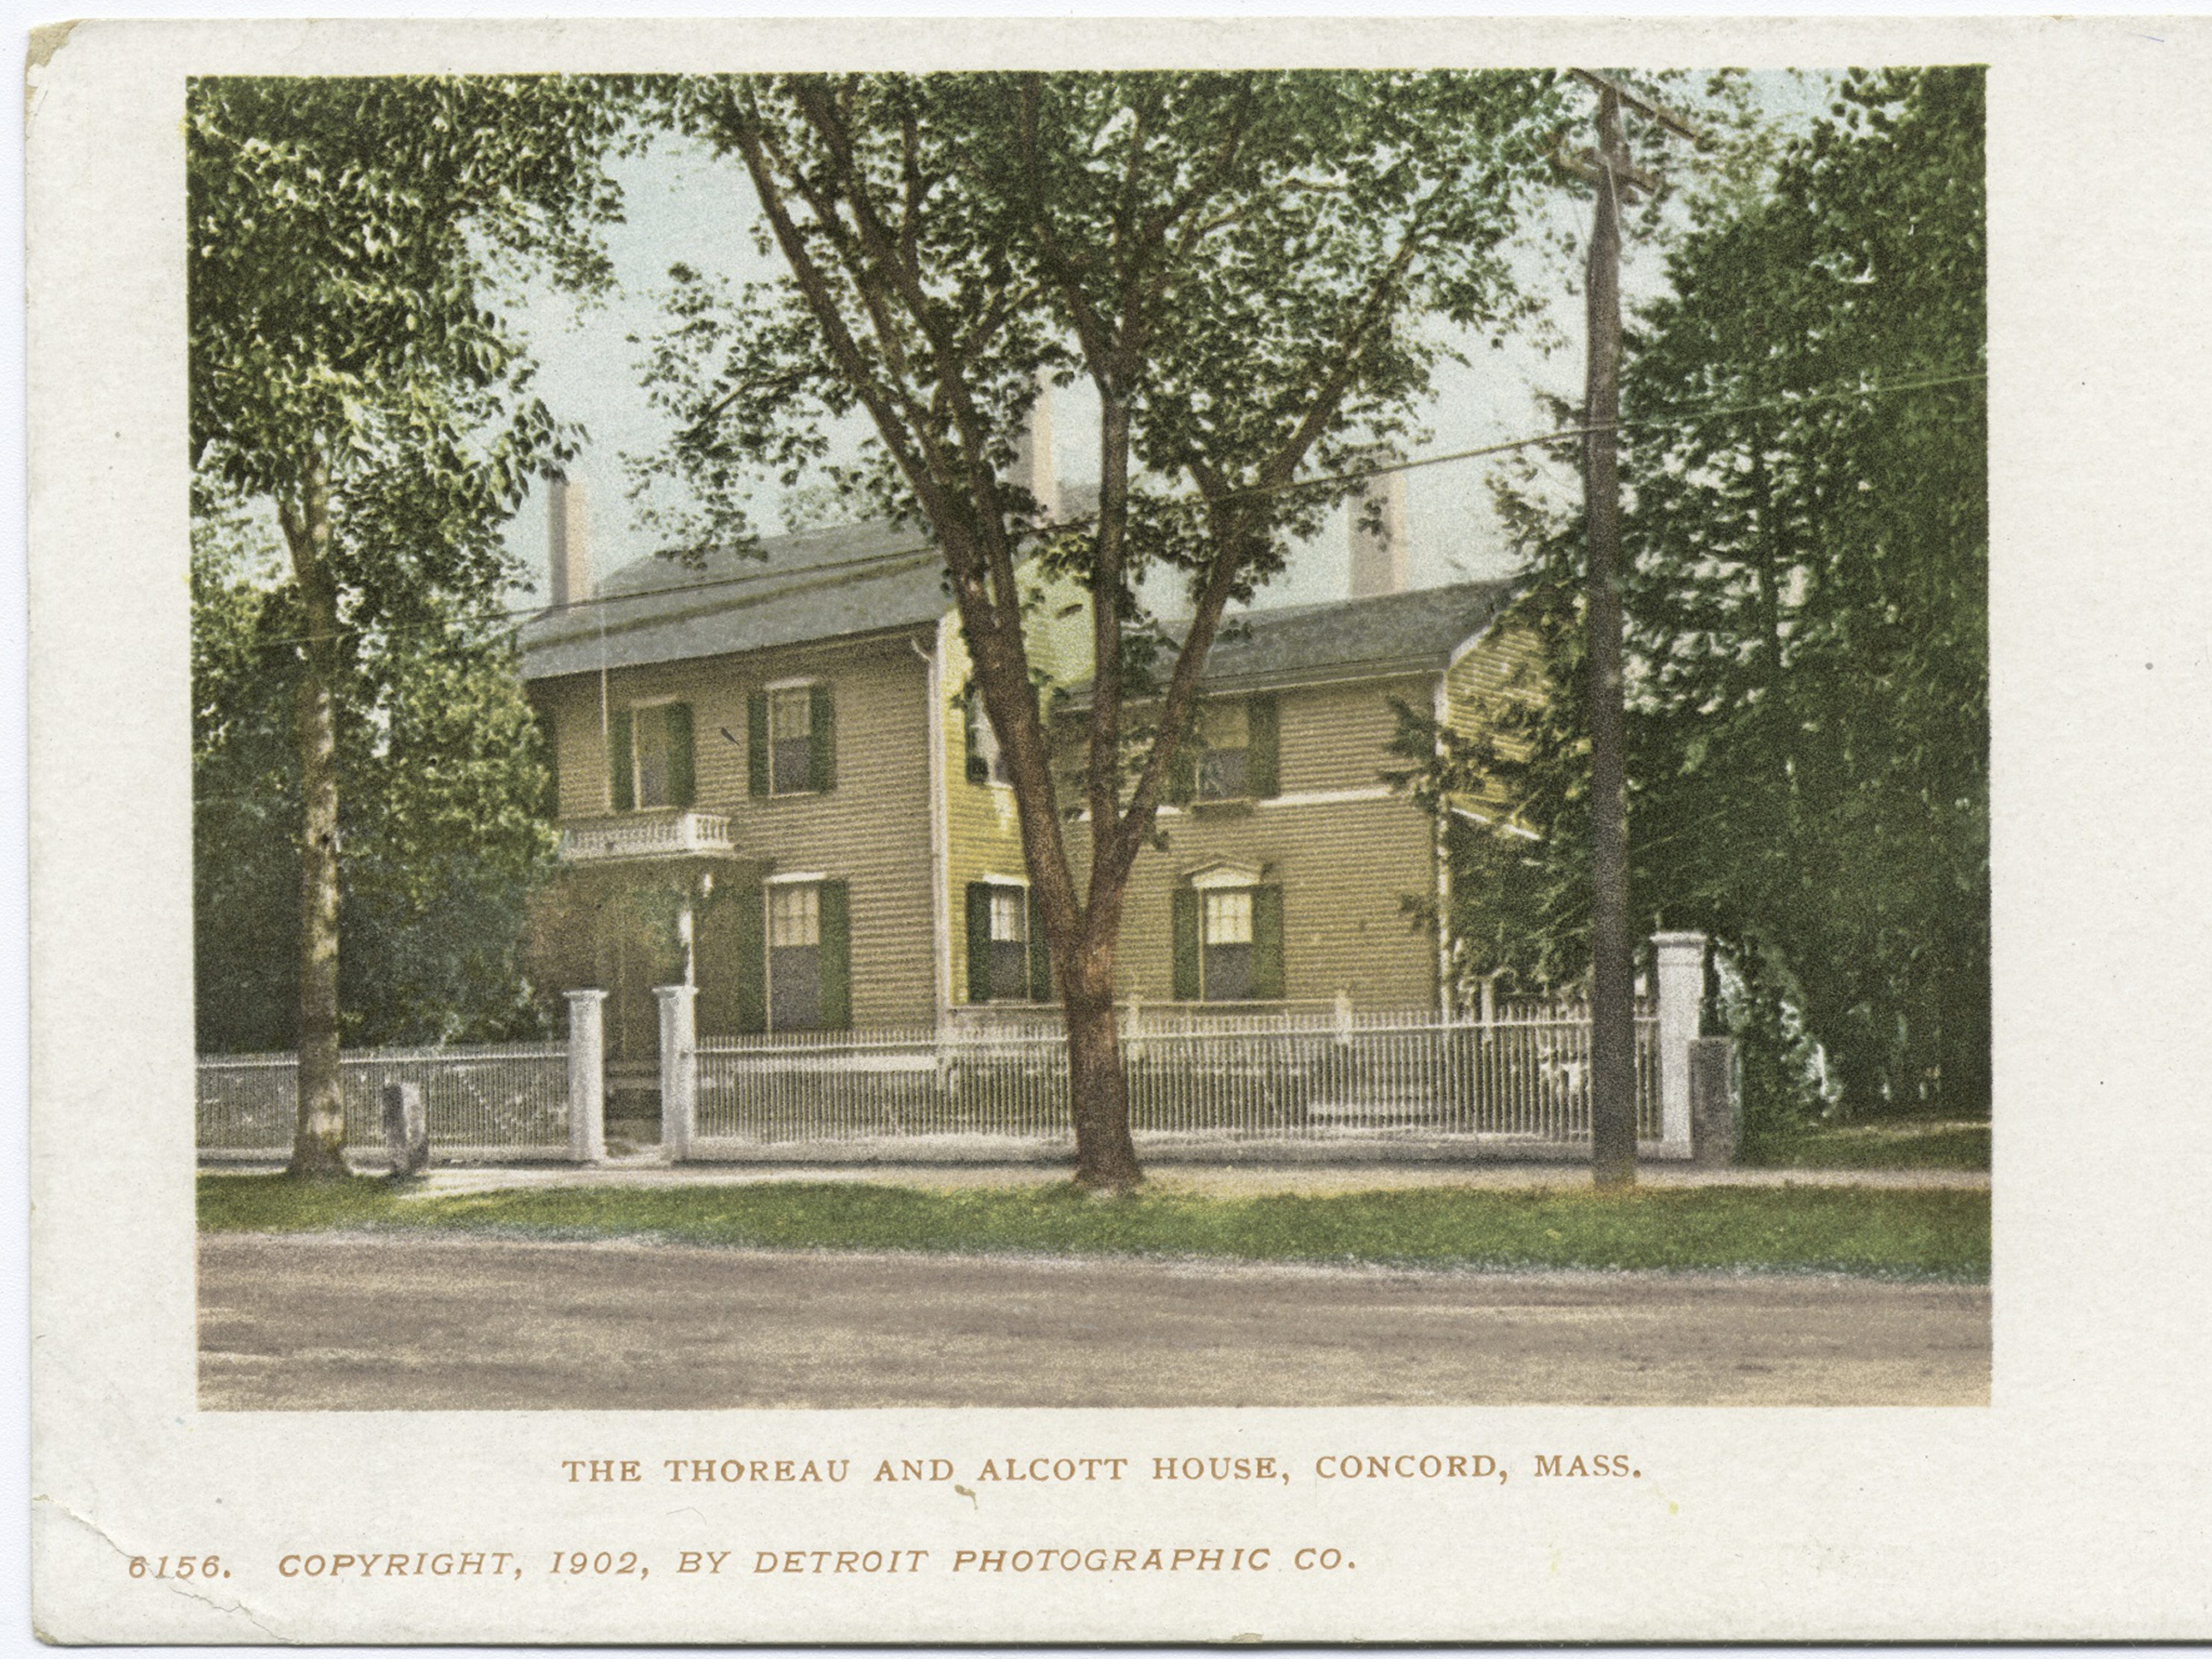 Detroit Publishing Company vintage postcard of the Thoreau and Alcott House, historic house in Concord, Massachusetts, 1902. From the New York Public Library. (Photo by Smith Collection/Gado/Getty Images)